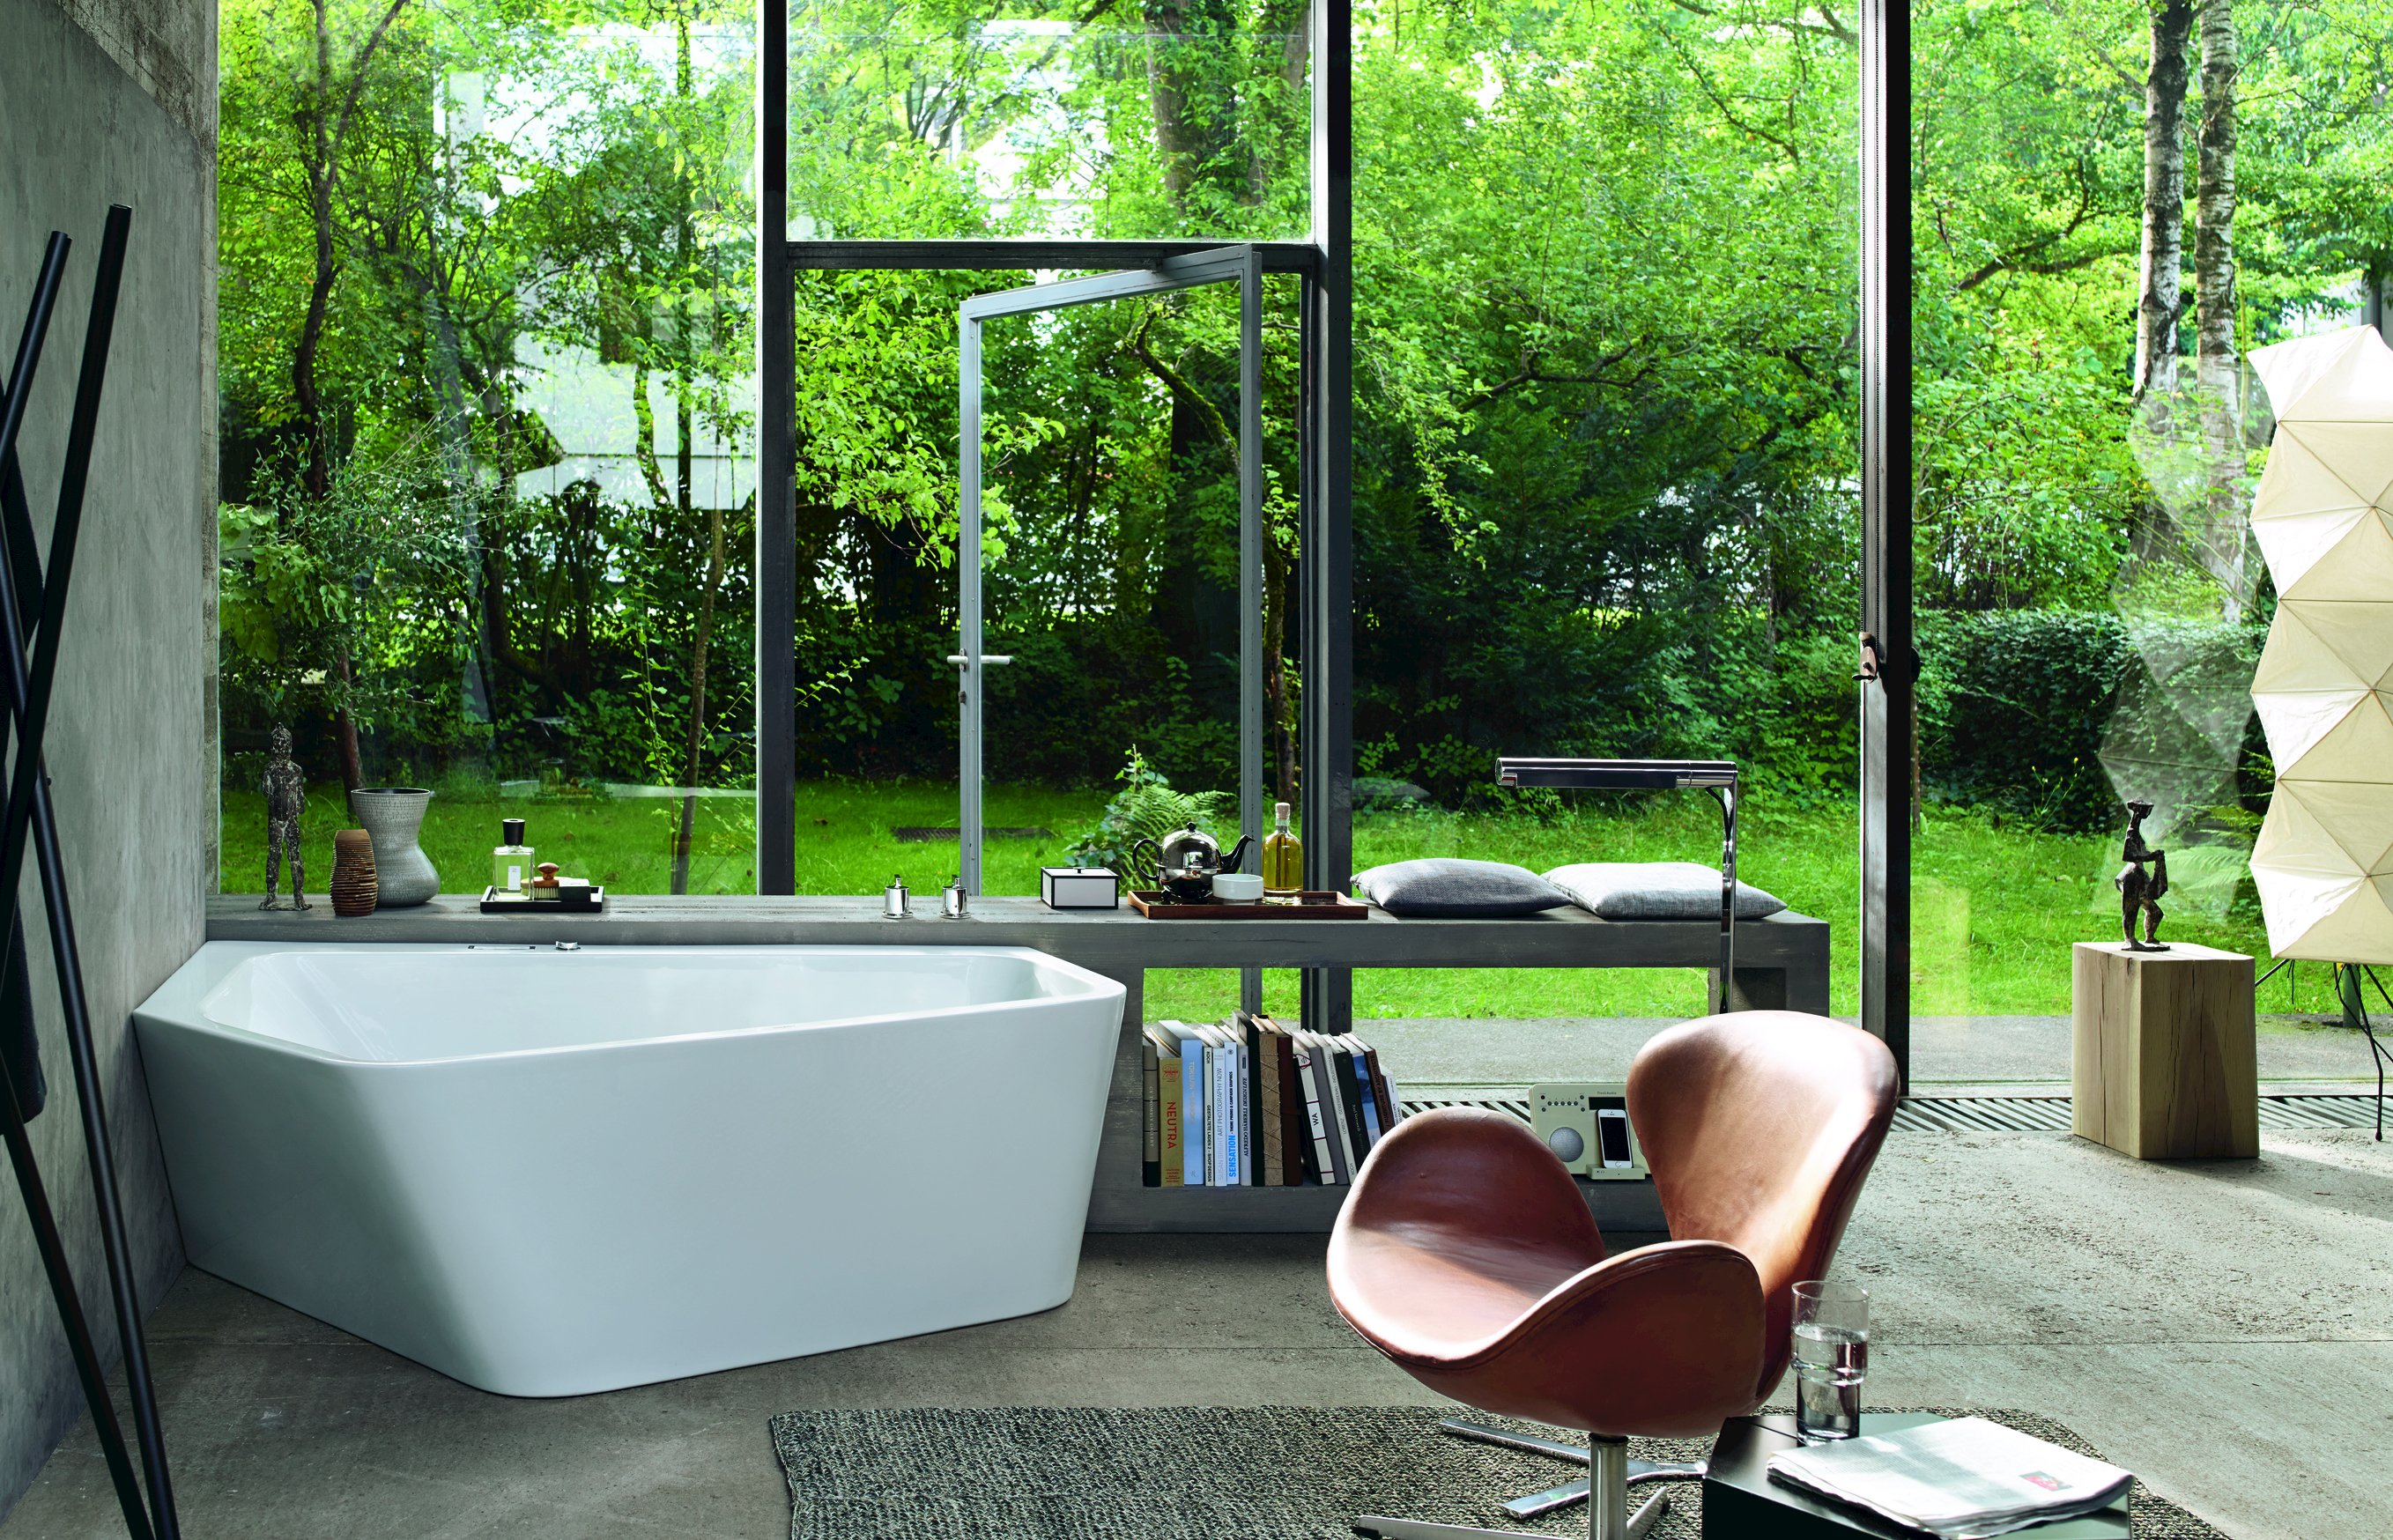 paiova 5 badewanne by duravit design eoos. Black Bedroom Furniture Sets. Home Design Ideas